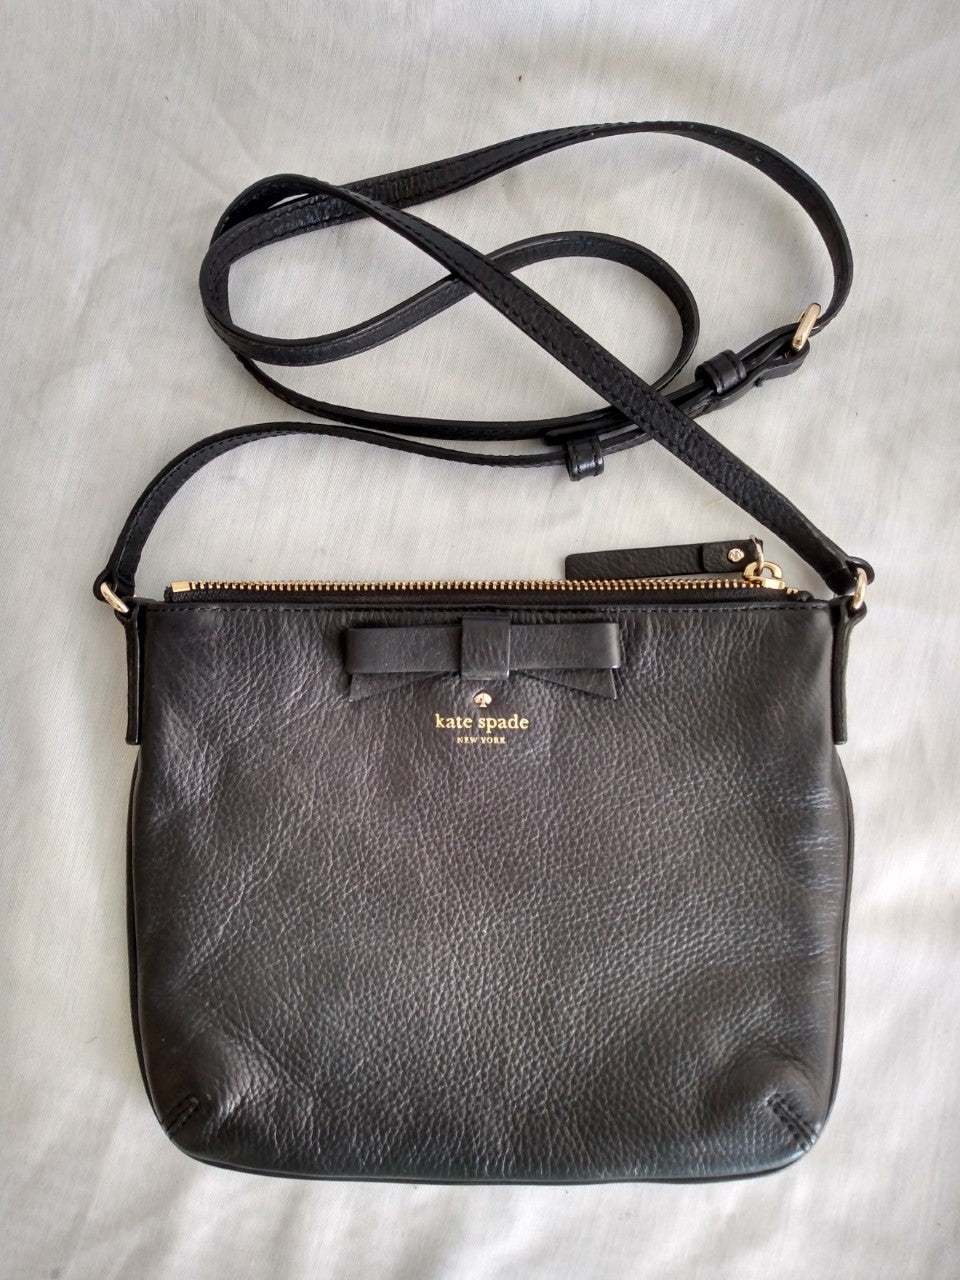 Kate Spade Small Leather Crossbody Bag